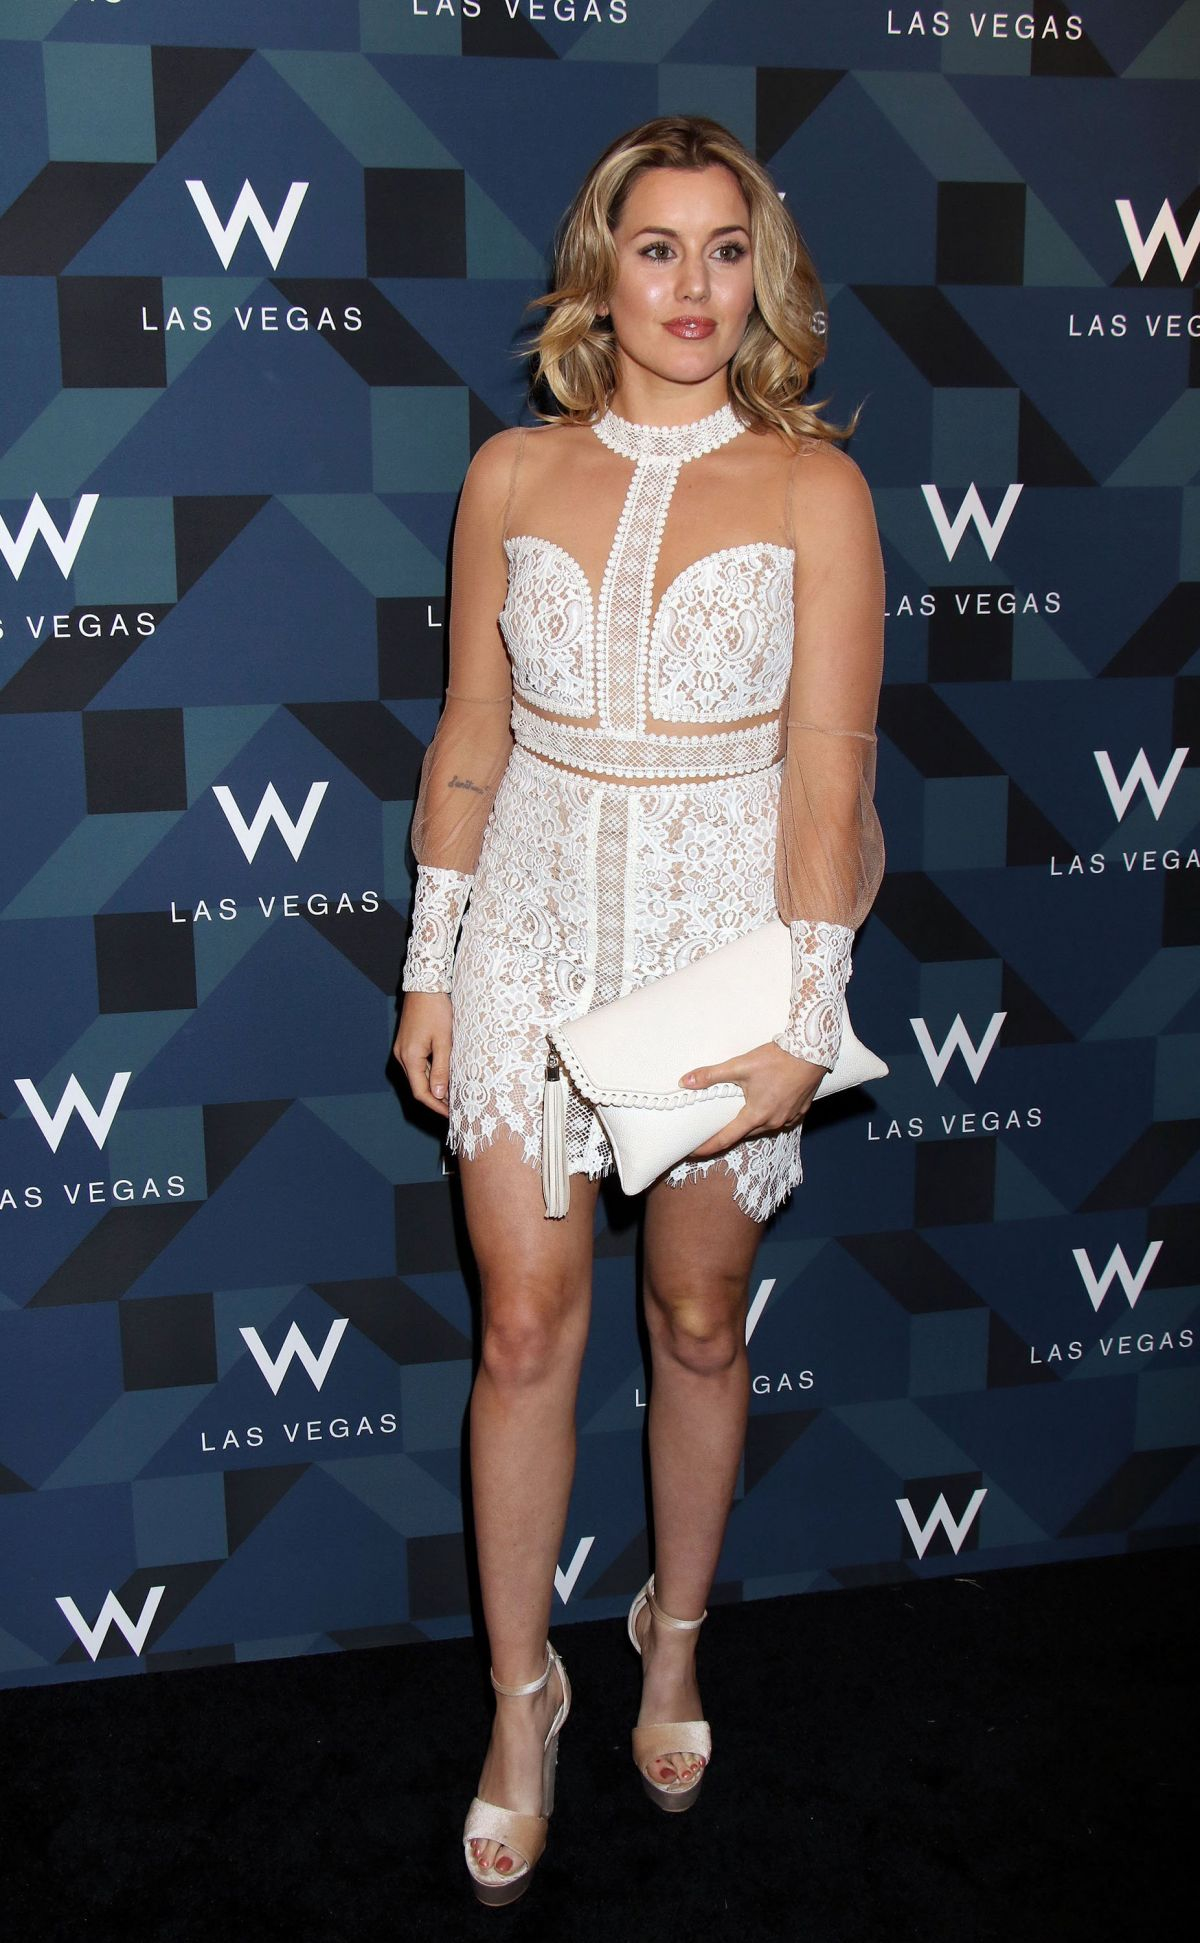 CAGGIE DUNLOP at W Las Vegas Grand Opening Celebration in Las Vegas 03/31/2017